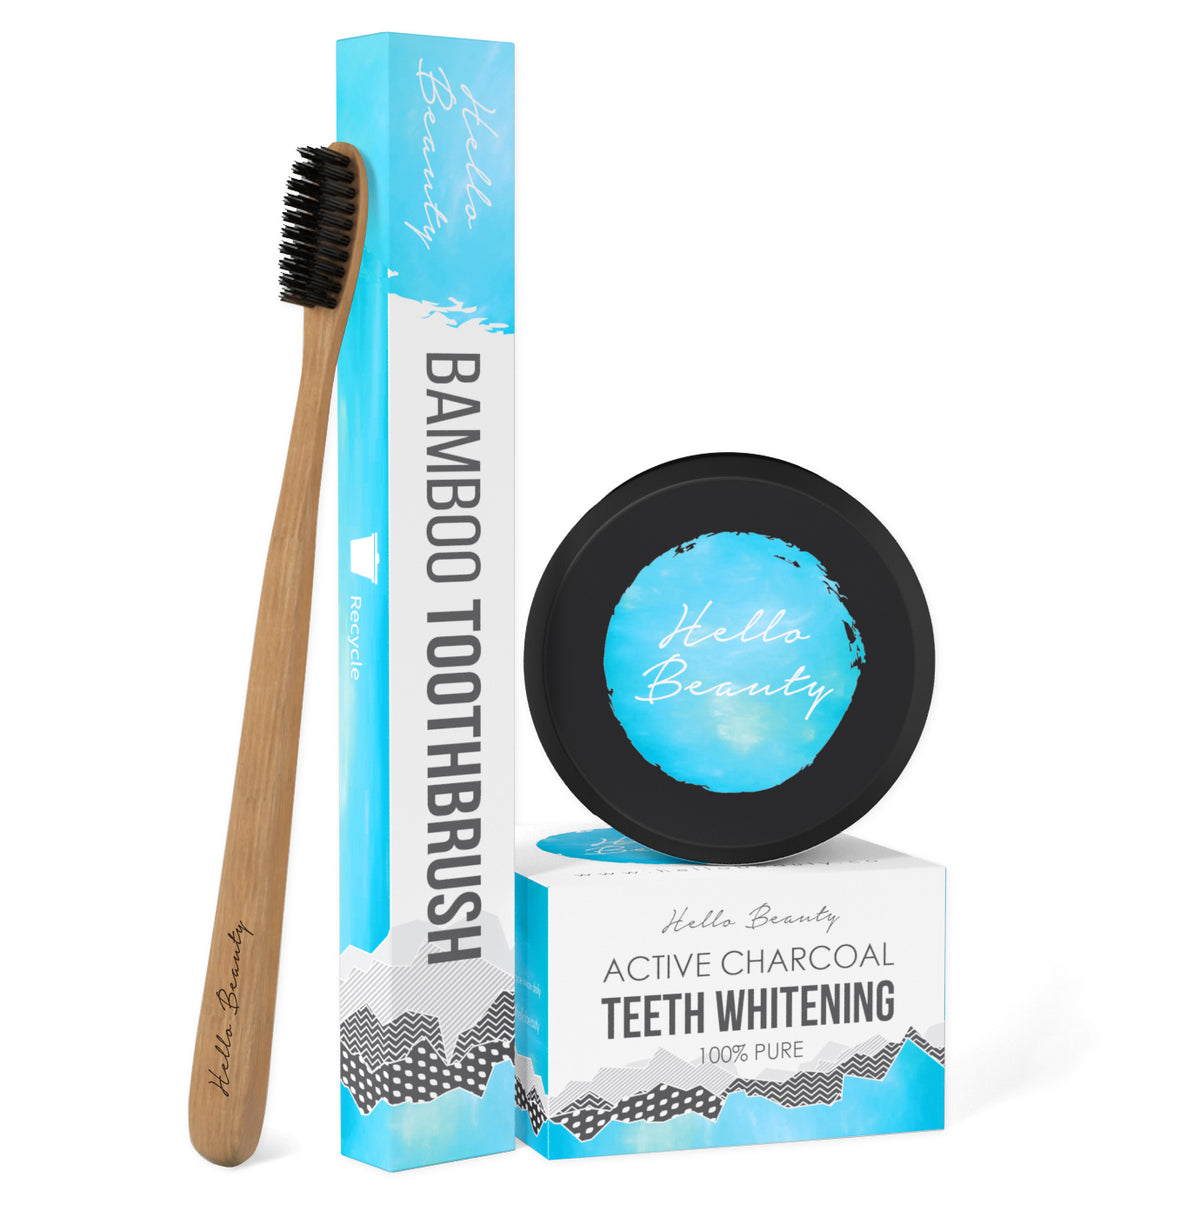 100% Natural Activated Charcoal Teeth Whitening with Bamboo Toothbrush